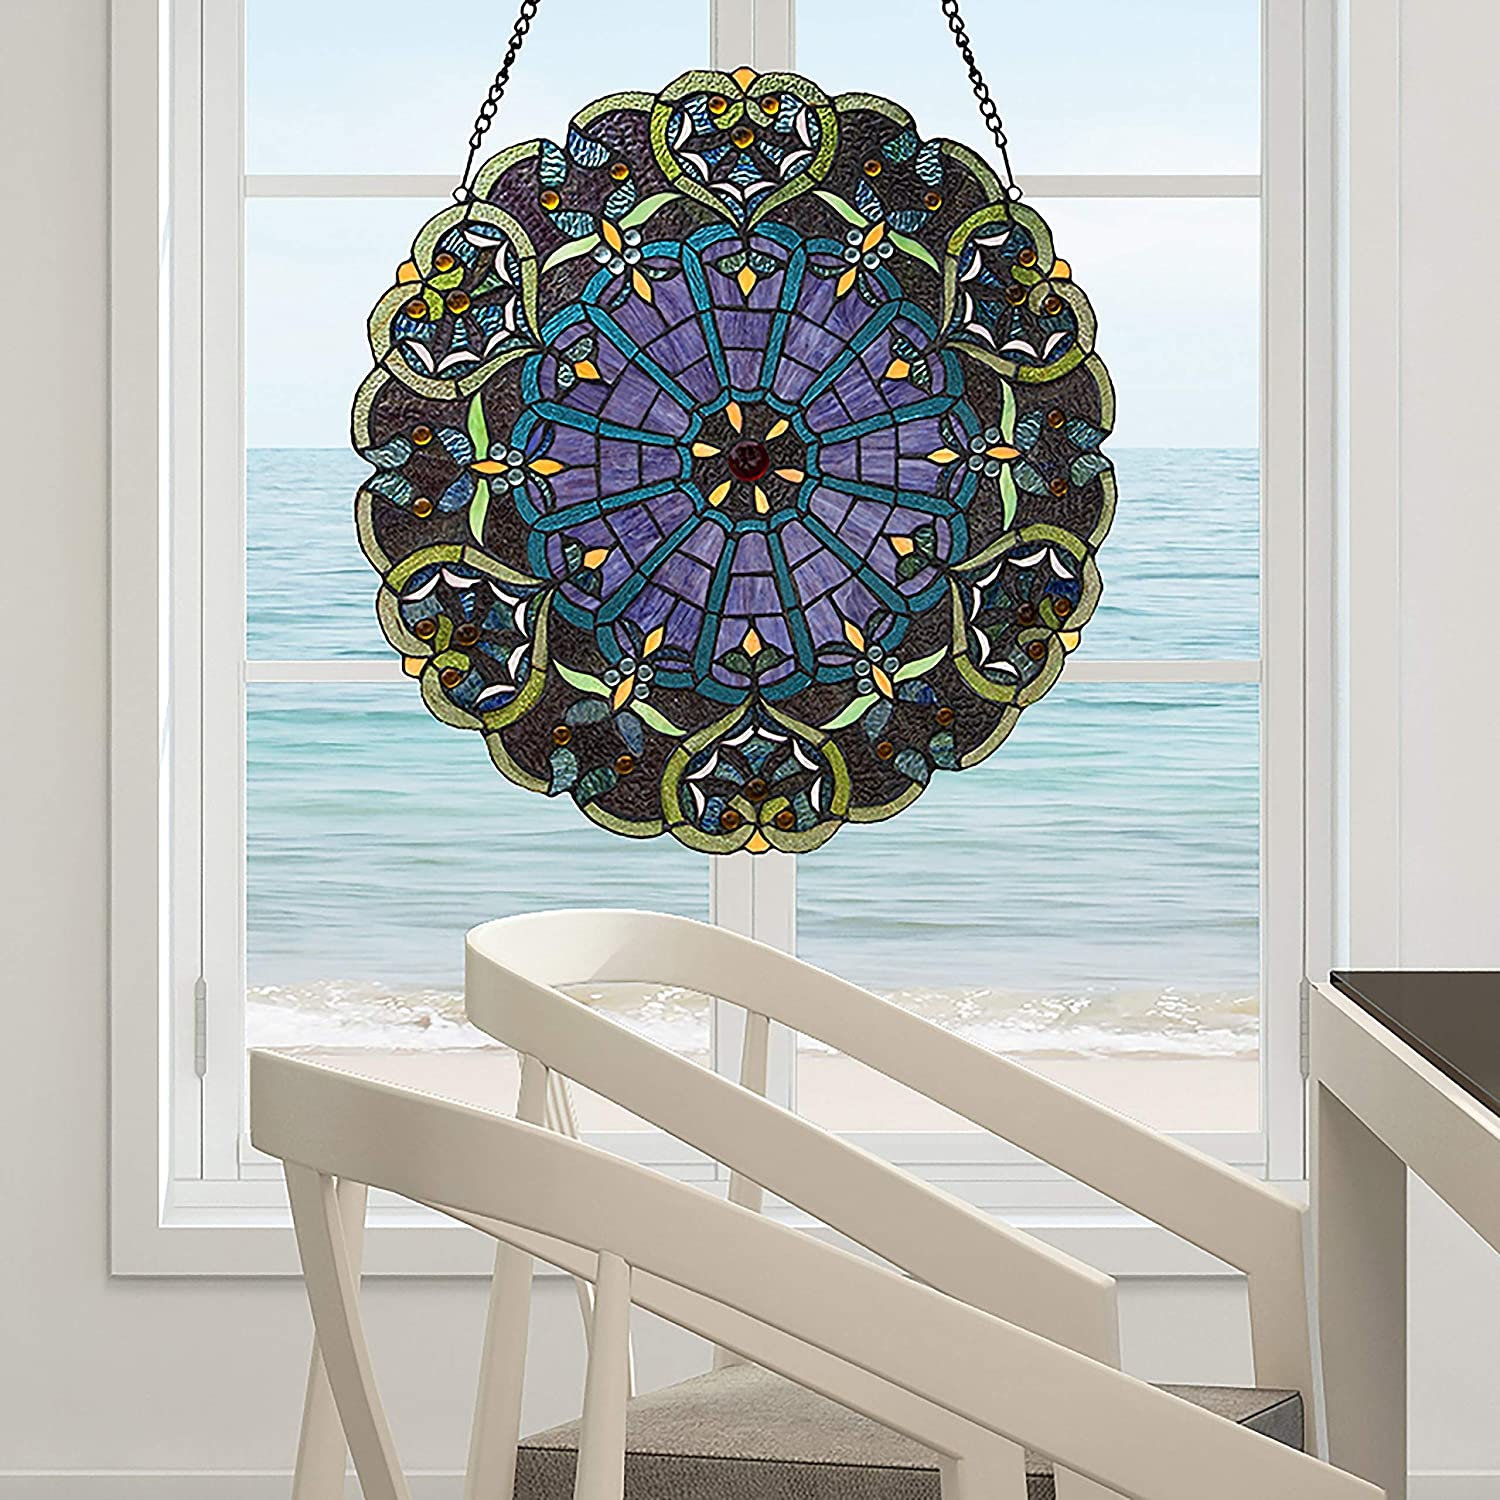 Large-scale sale Stained Glass Webbed Heart Popular brand in the world 22